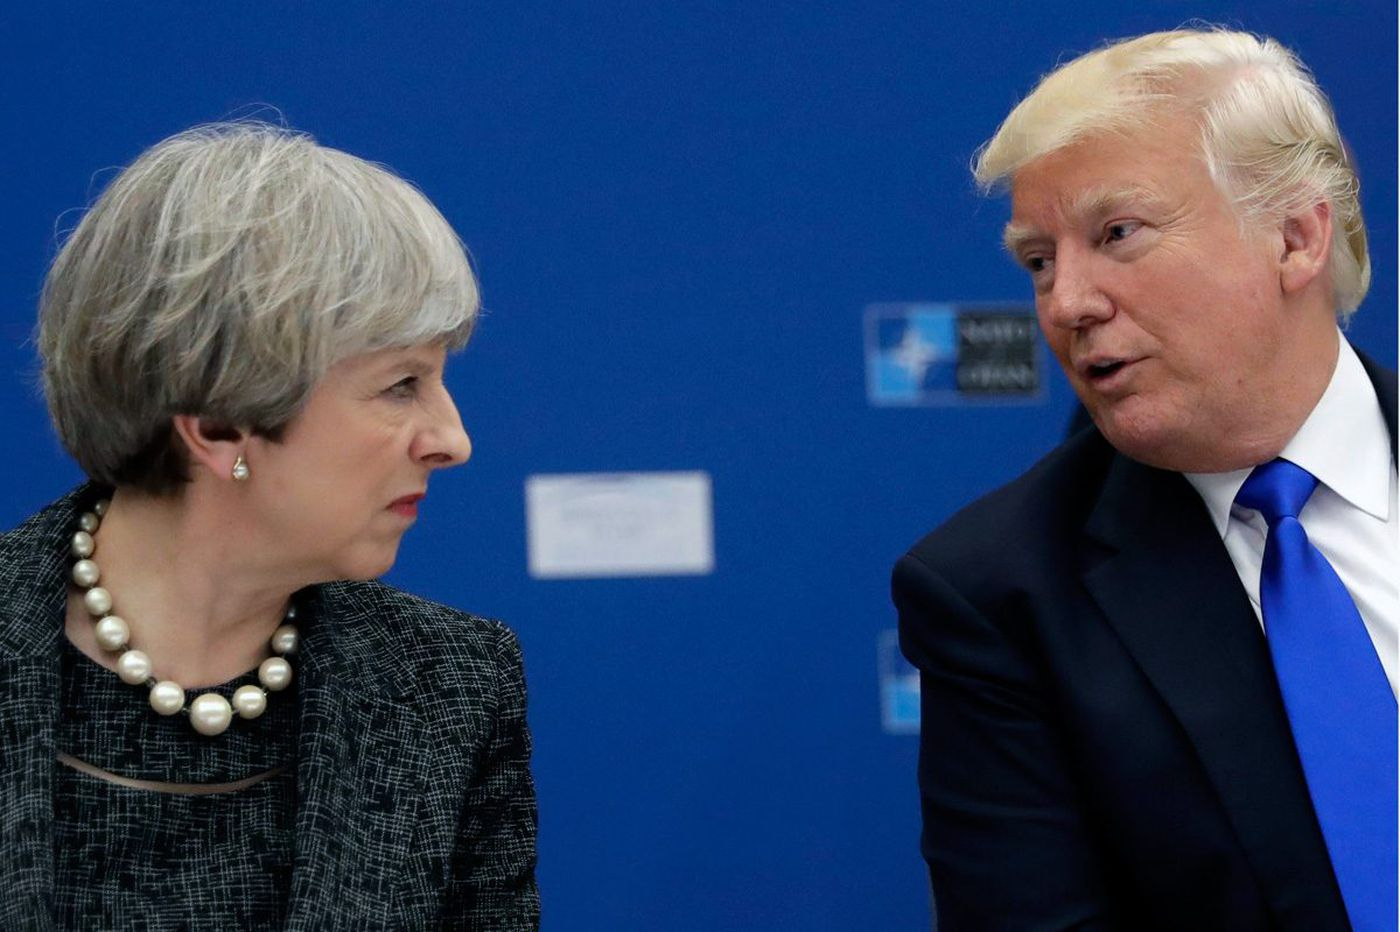 Trump blasted Theresa May on Twitter. Unfortunately, he got the wrong woman